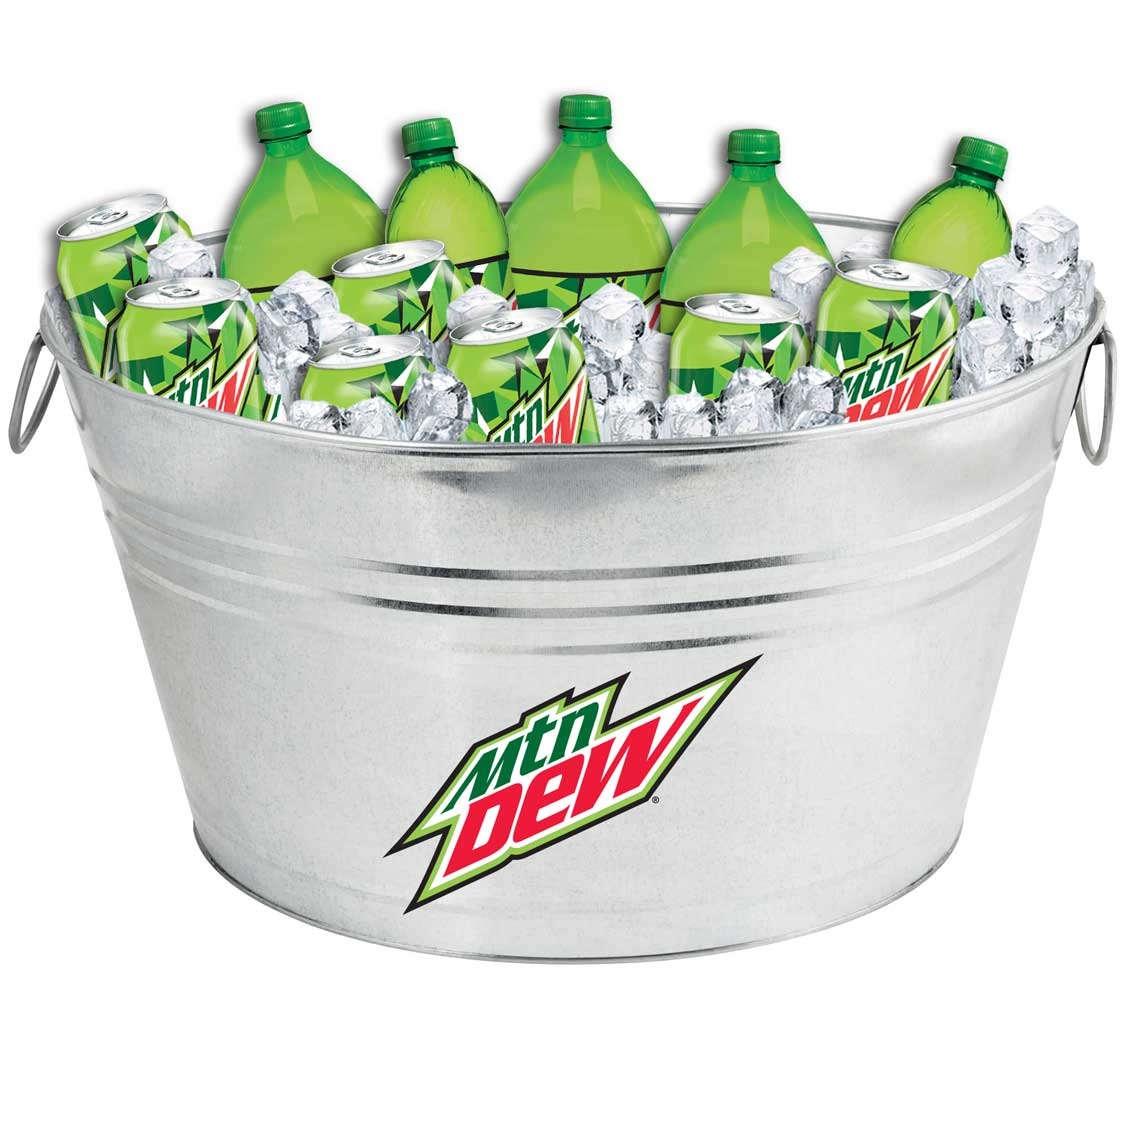 Oval Galvanized Metal Tub - MTN Dew